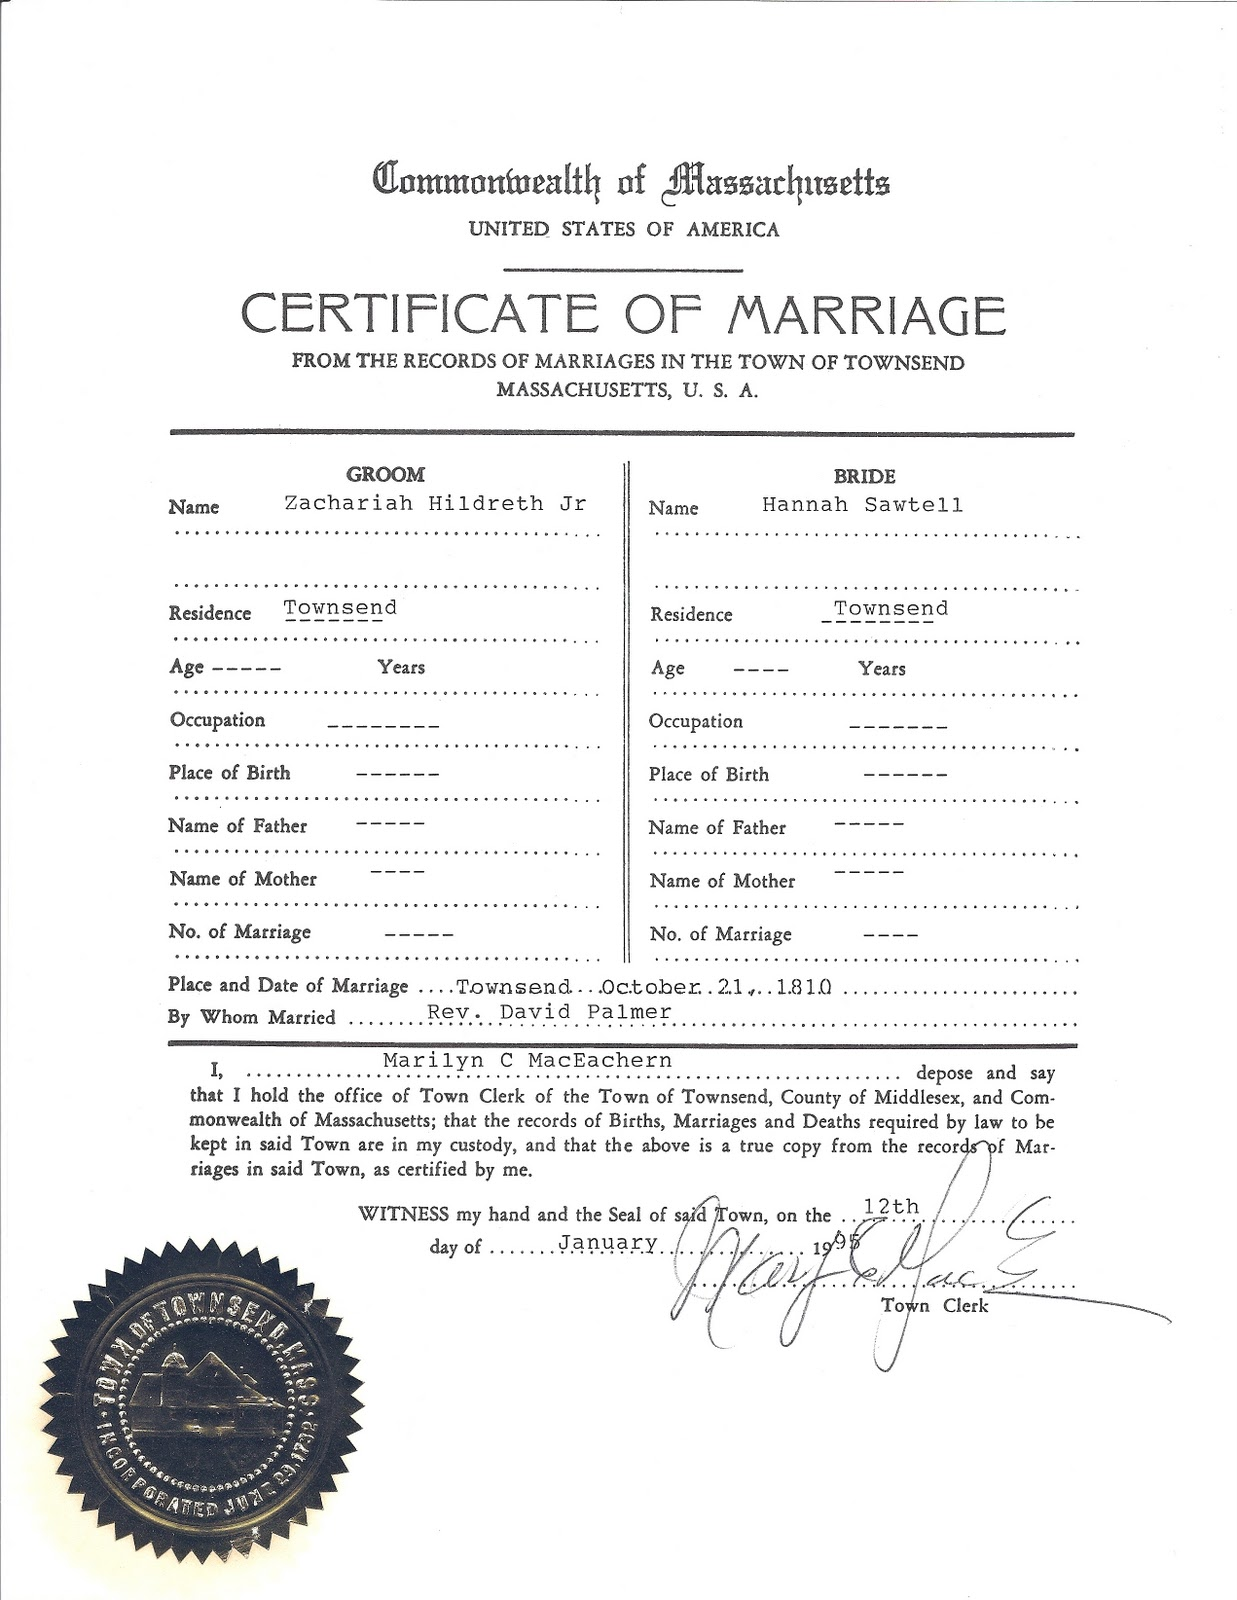 town clerk files mail marriage certificate form